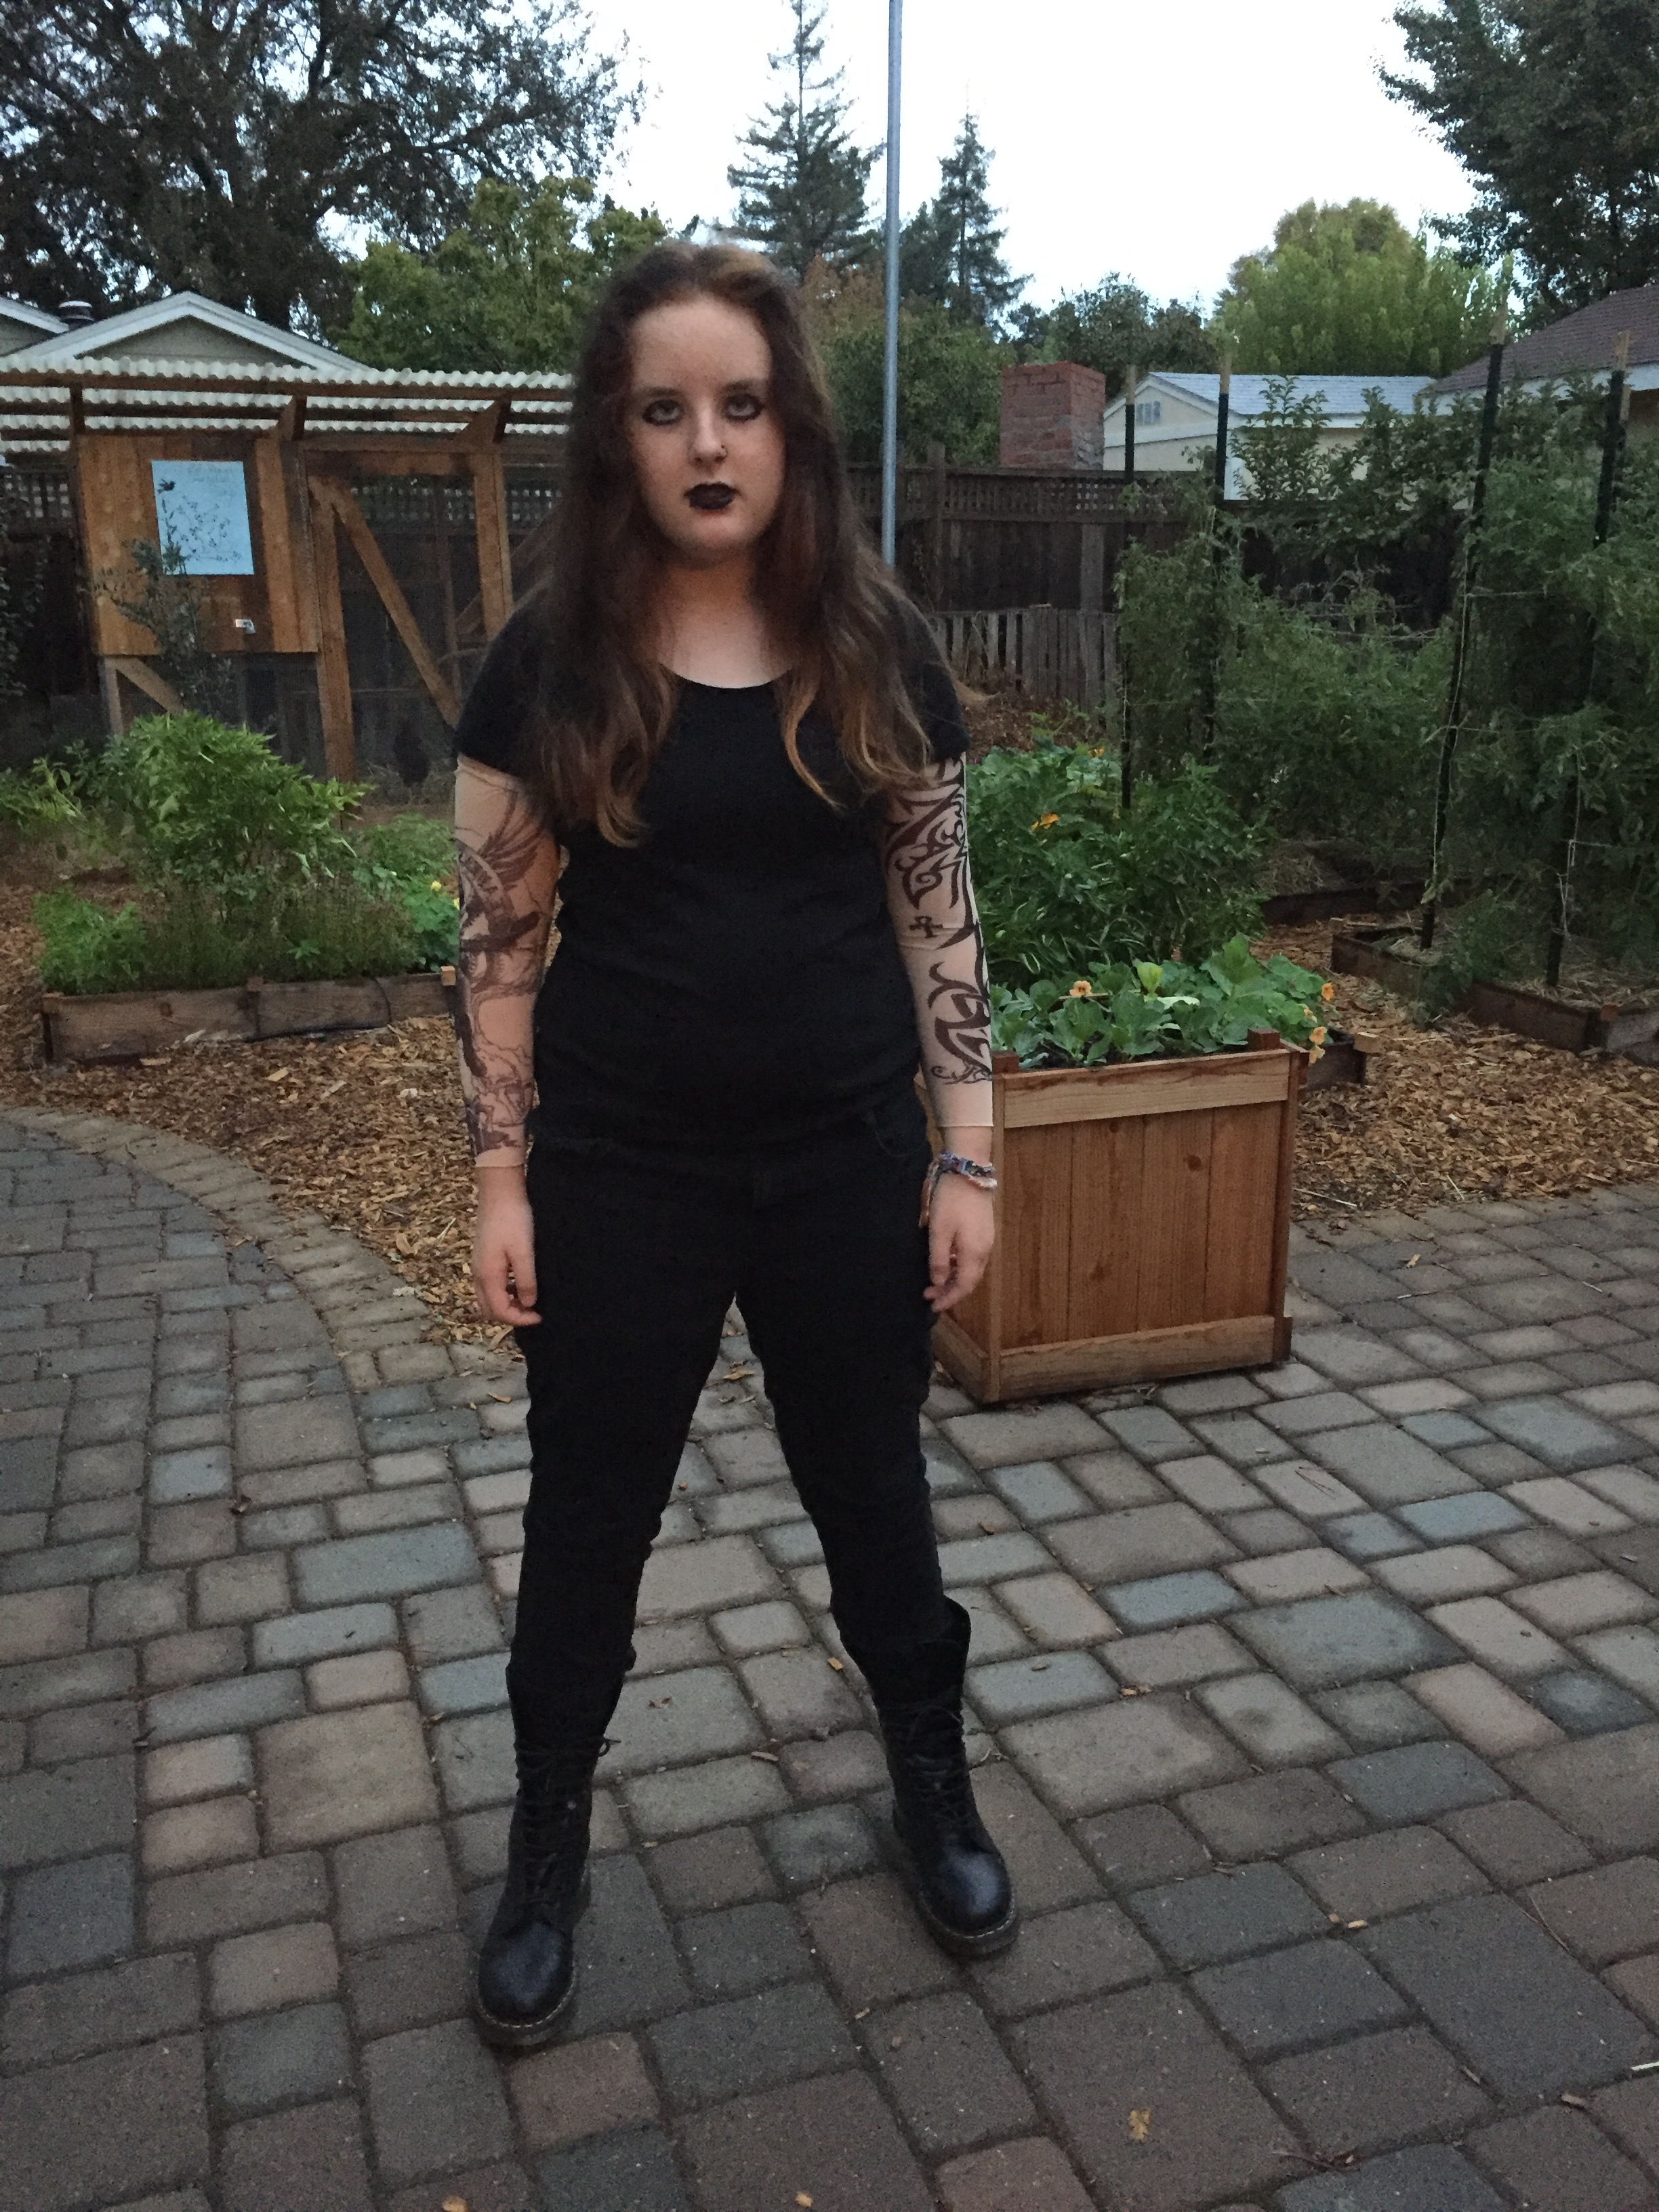 And this year, a pierced and tattooed Punk, wearing Doc Martens I would have killed for in the 90's. She looks a little too happy, even though I encouraged her to reflect on her angst and ennui.